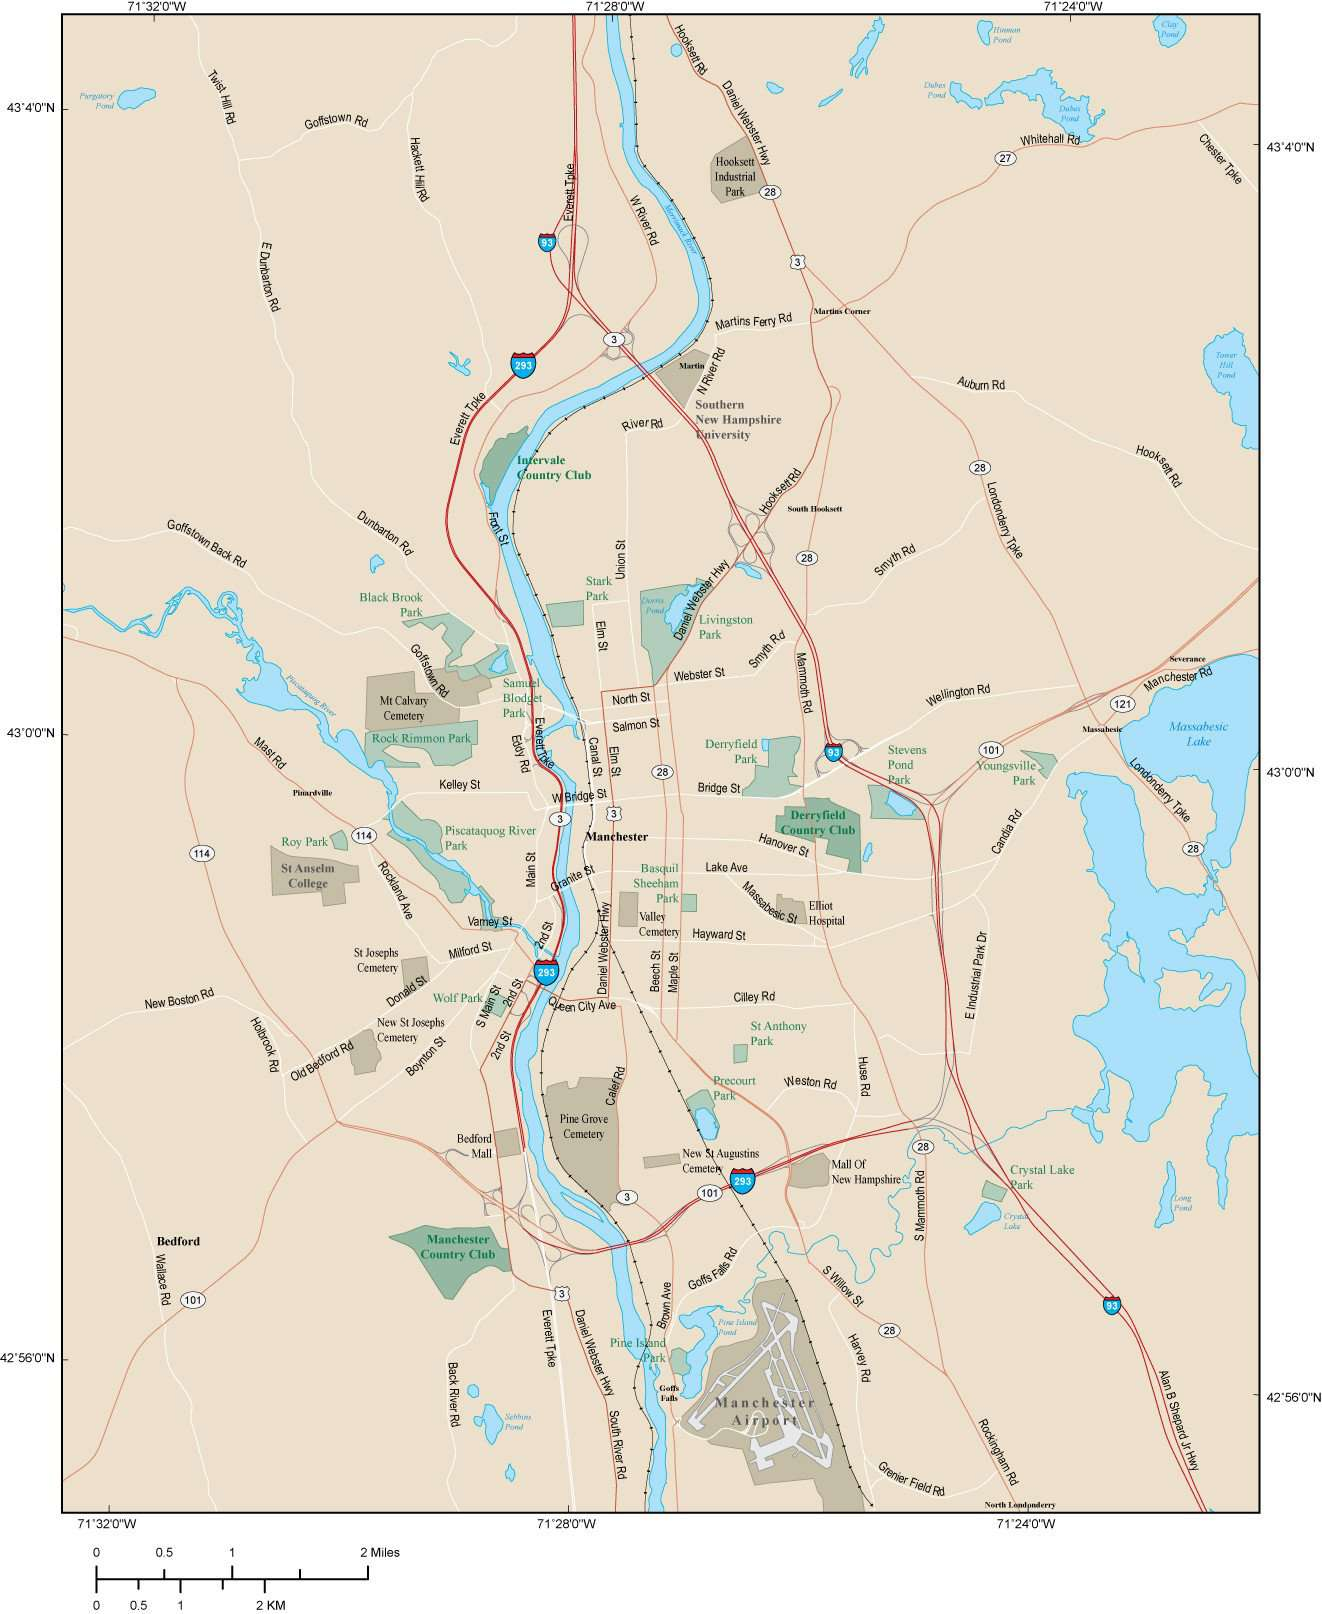 Manchester NH Map - Metro Area with Major Roads on map of southern new hampshire, map of strafford county new hampshire, map of wolfeboro new hampshire, map of kentucky, map of maryland, map of new hampshire towns, map of cheshire county new hampshire, map of cl, map of white mountains, map of connecticut, map of gh, map of vt, map of ny, map of ma, map of me, map of charlestown new hampshire, map of nm, map of great north woods, map of canada, map of nc,